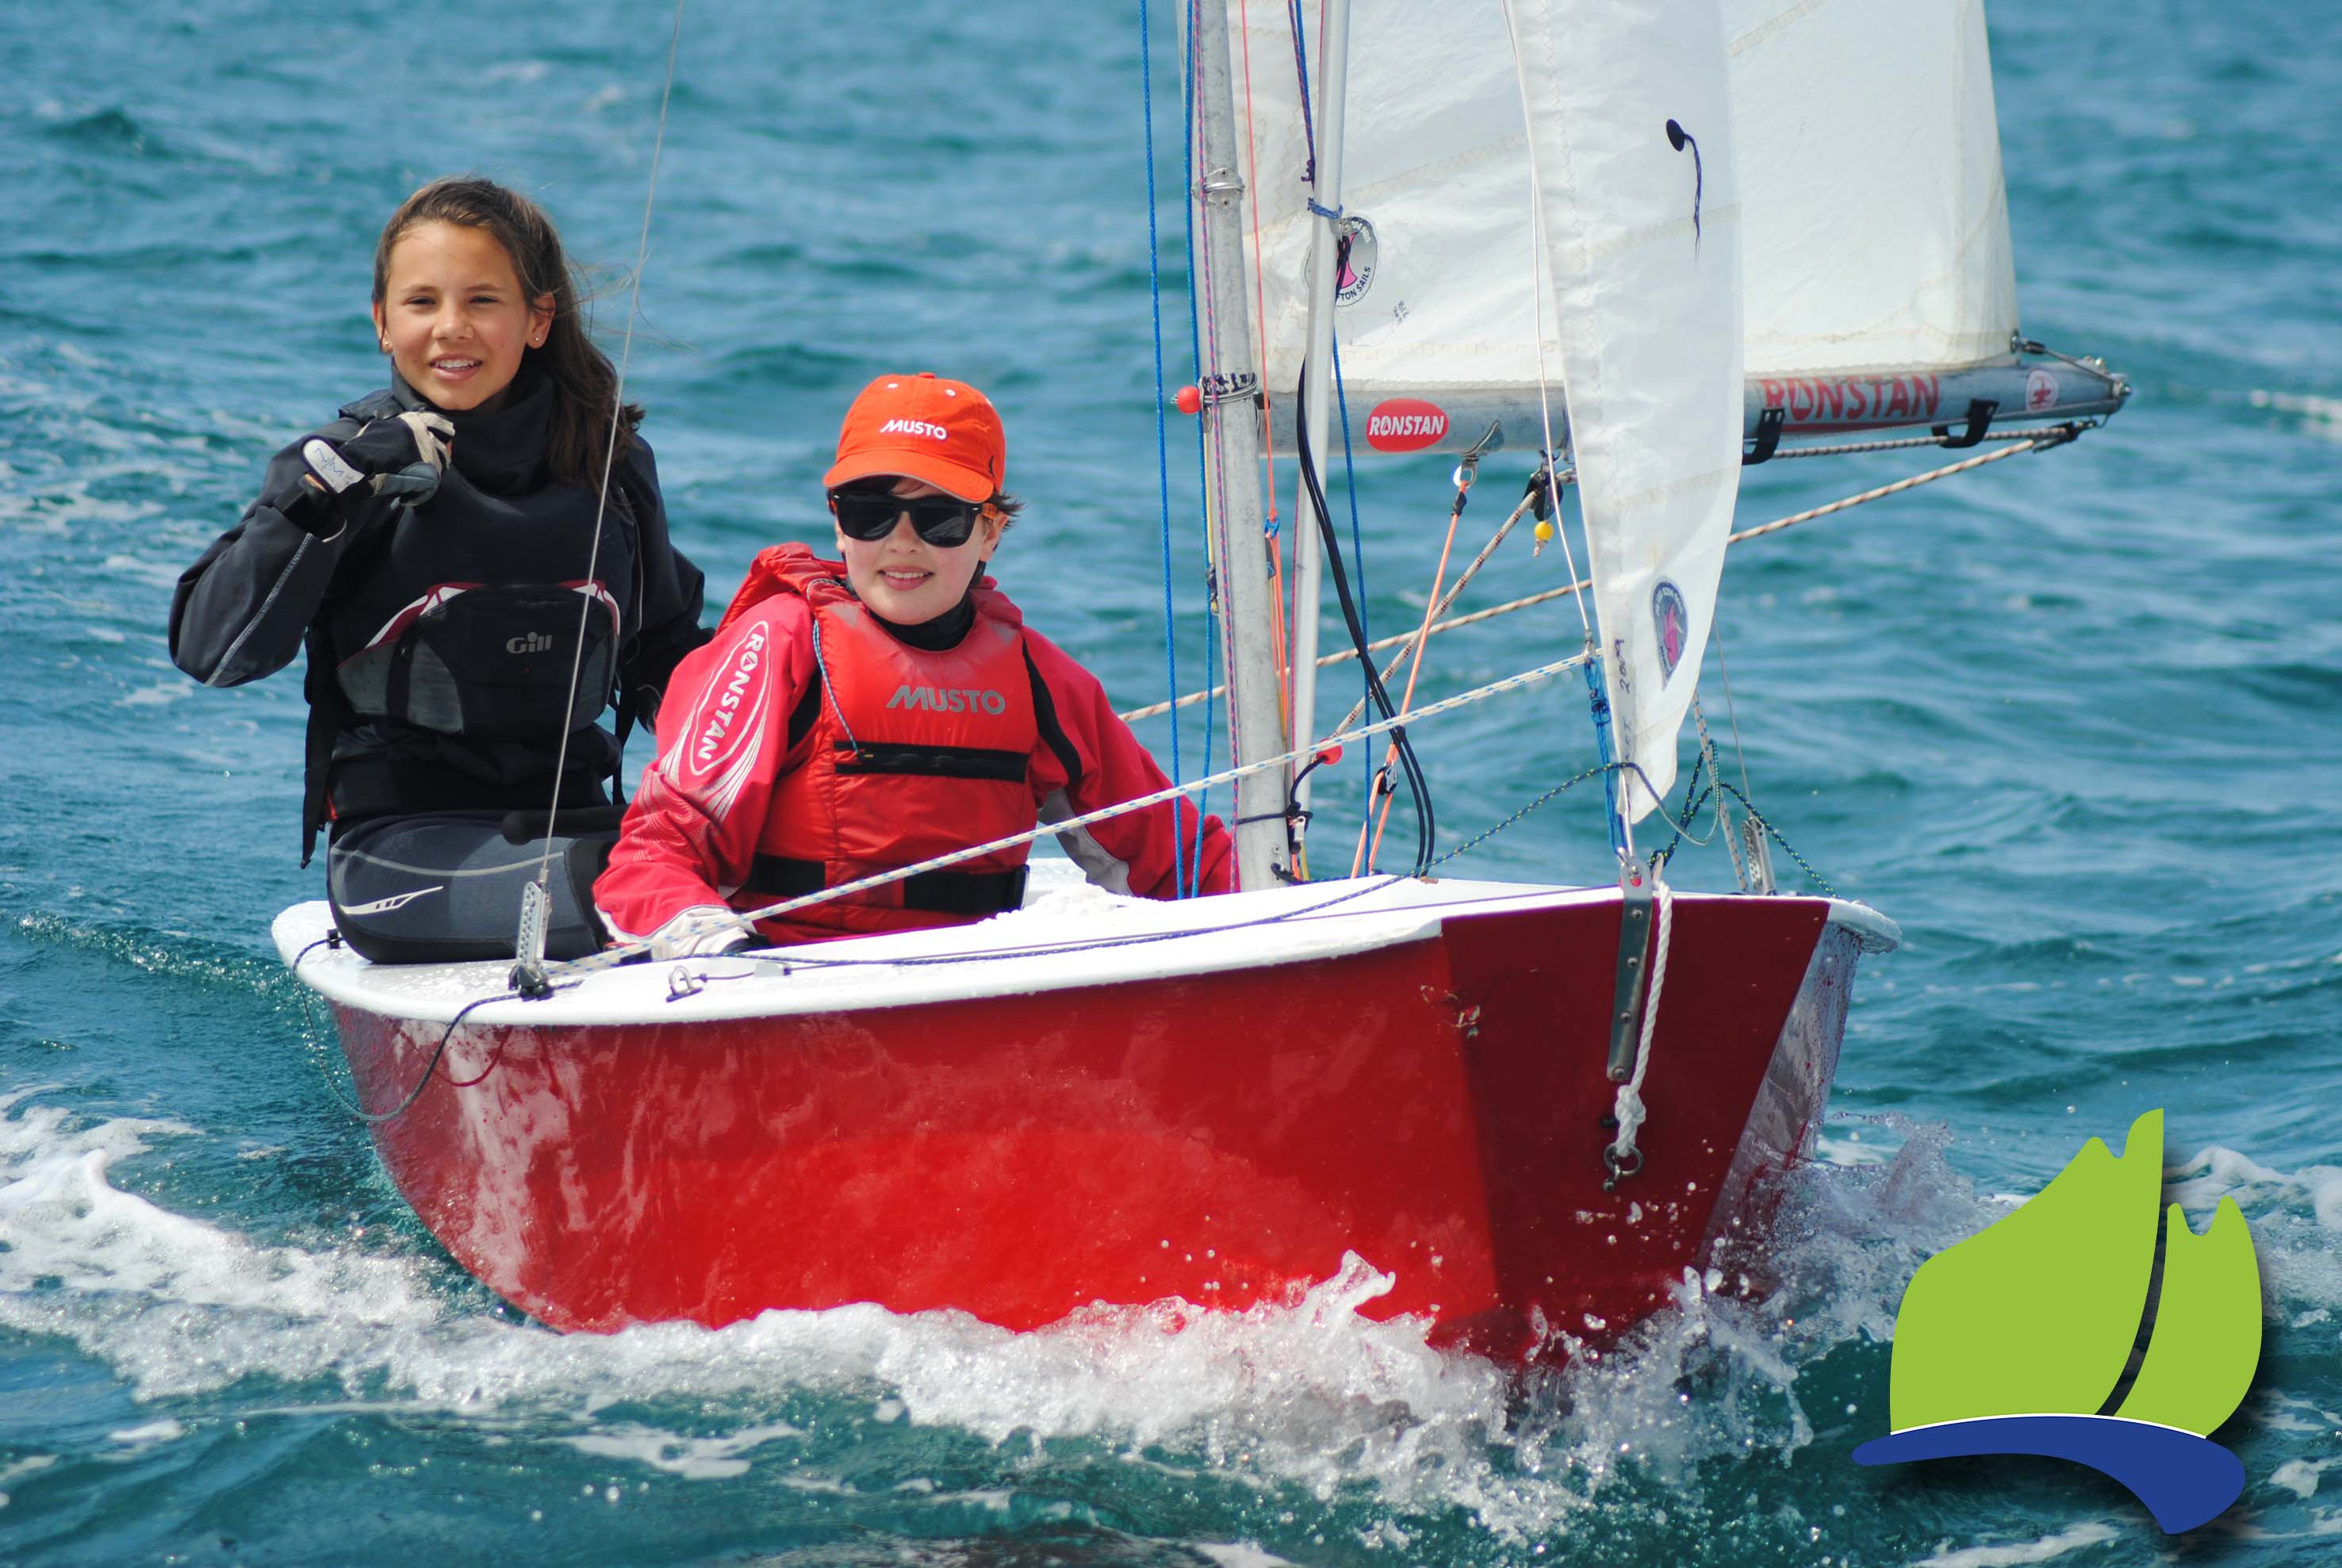 Ella Konings and Amy Short sailed their cadet, Wilson, in the Tri Series event in Port Lincoln.